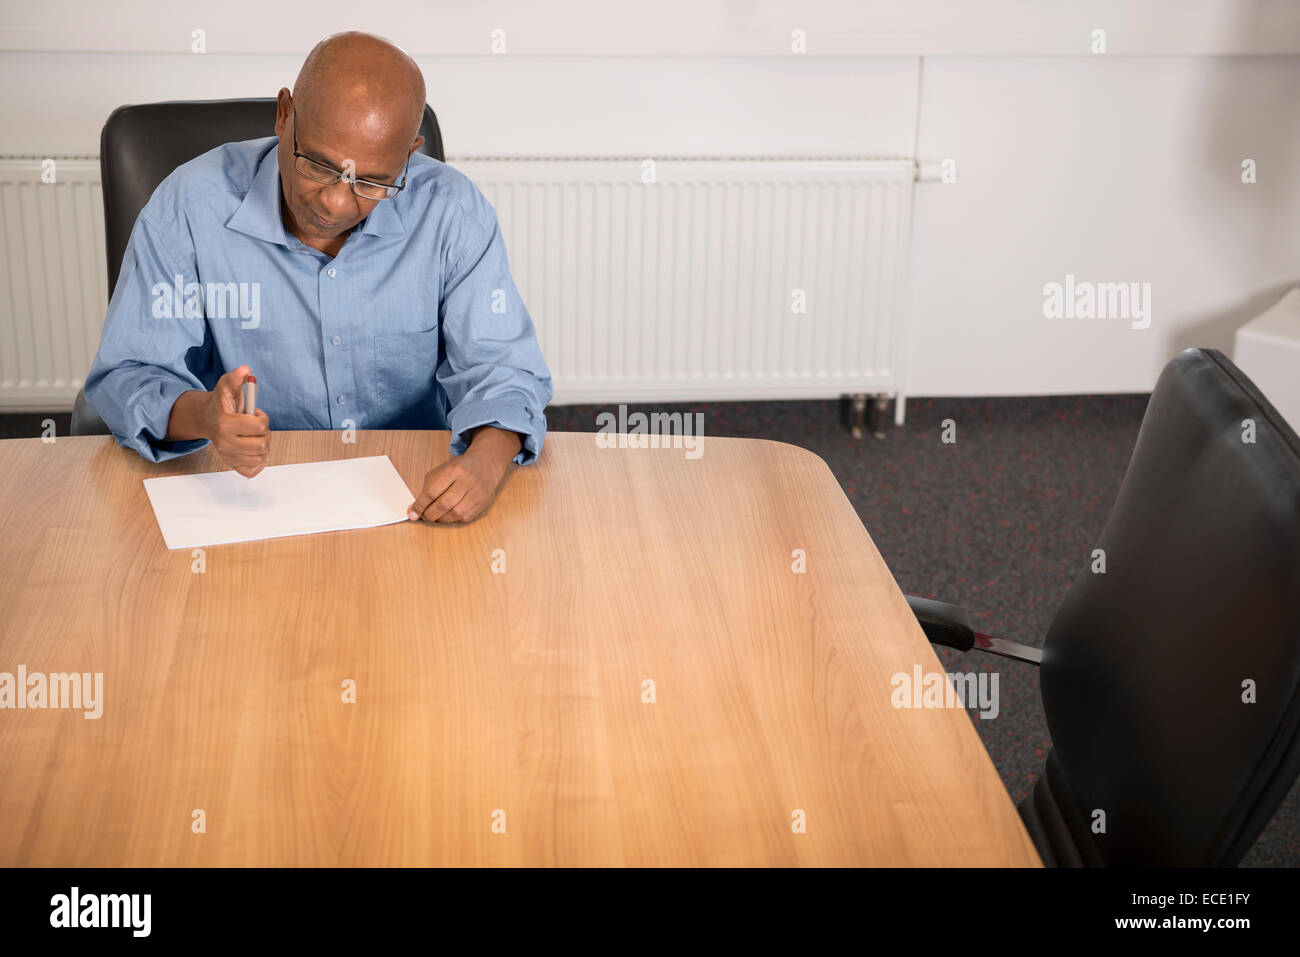 Confidence business portrait Afrikaner office - Stock Image